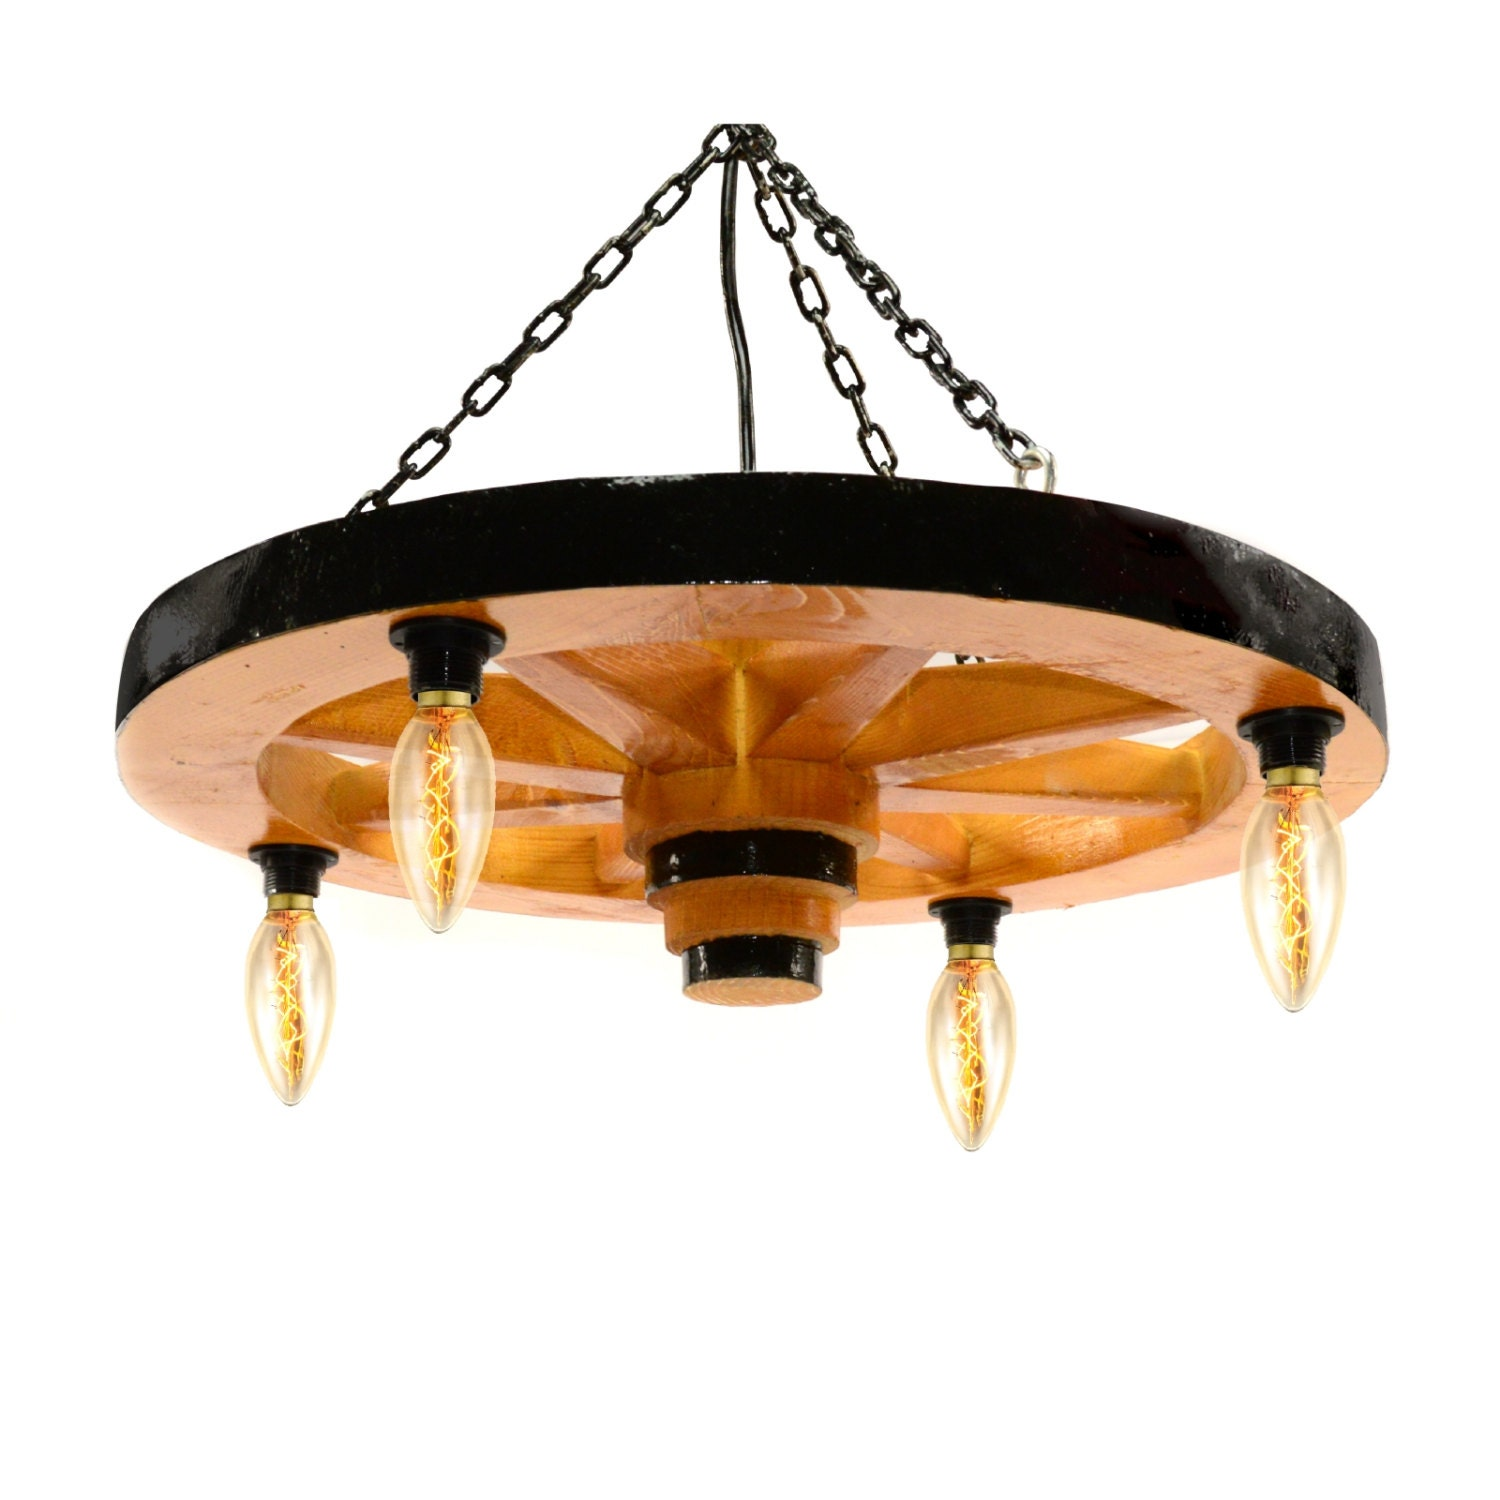 Wooden Rustic Chandelier Wagon Wheel Ceiling Light Fixture 4